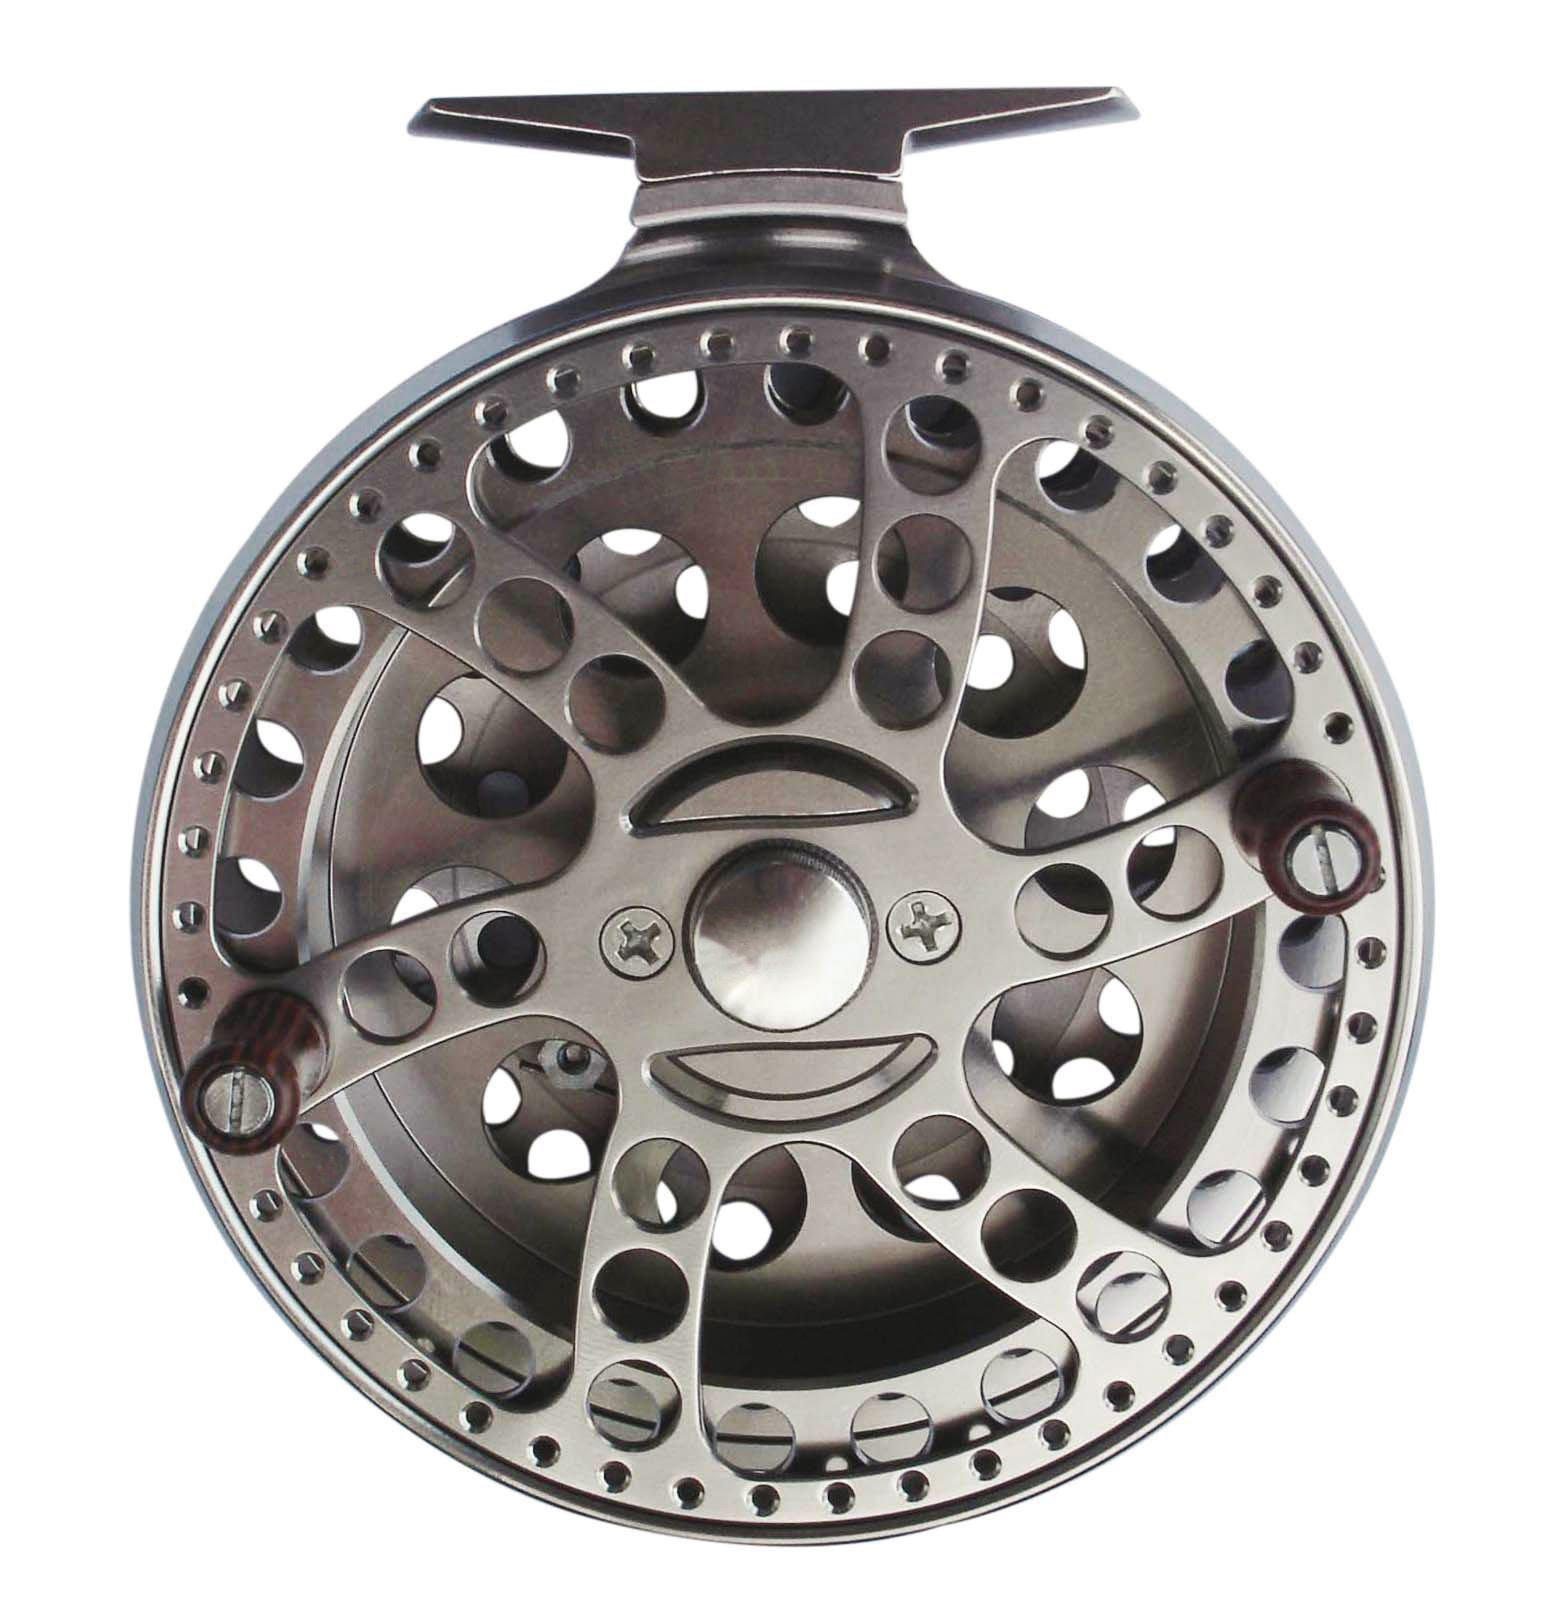 Okuma Sheffield Centre Pin S-1002 Baitcaster Reel - reid outdoors